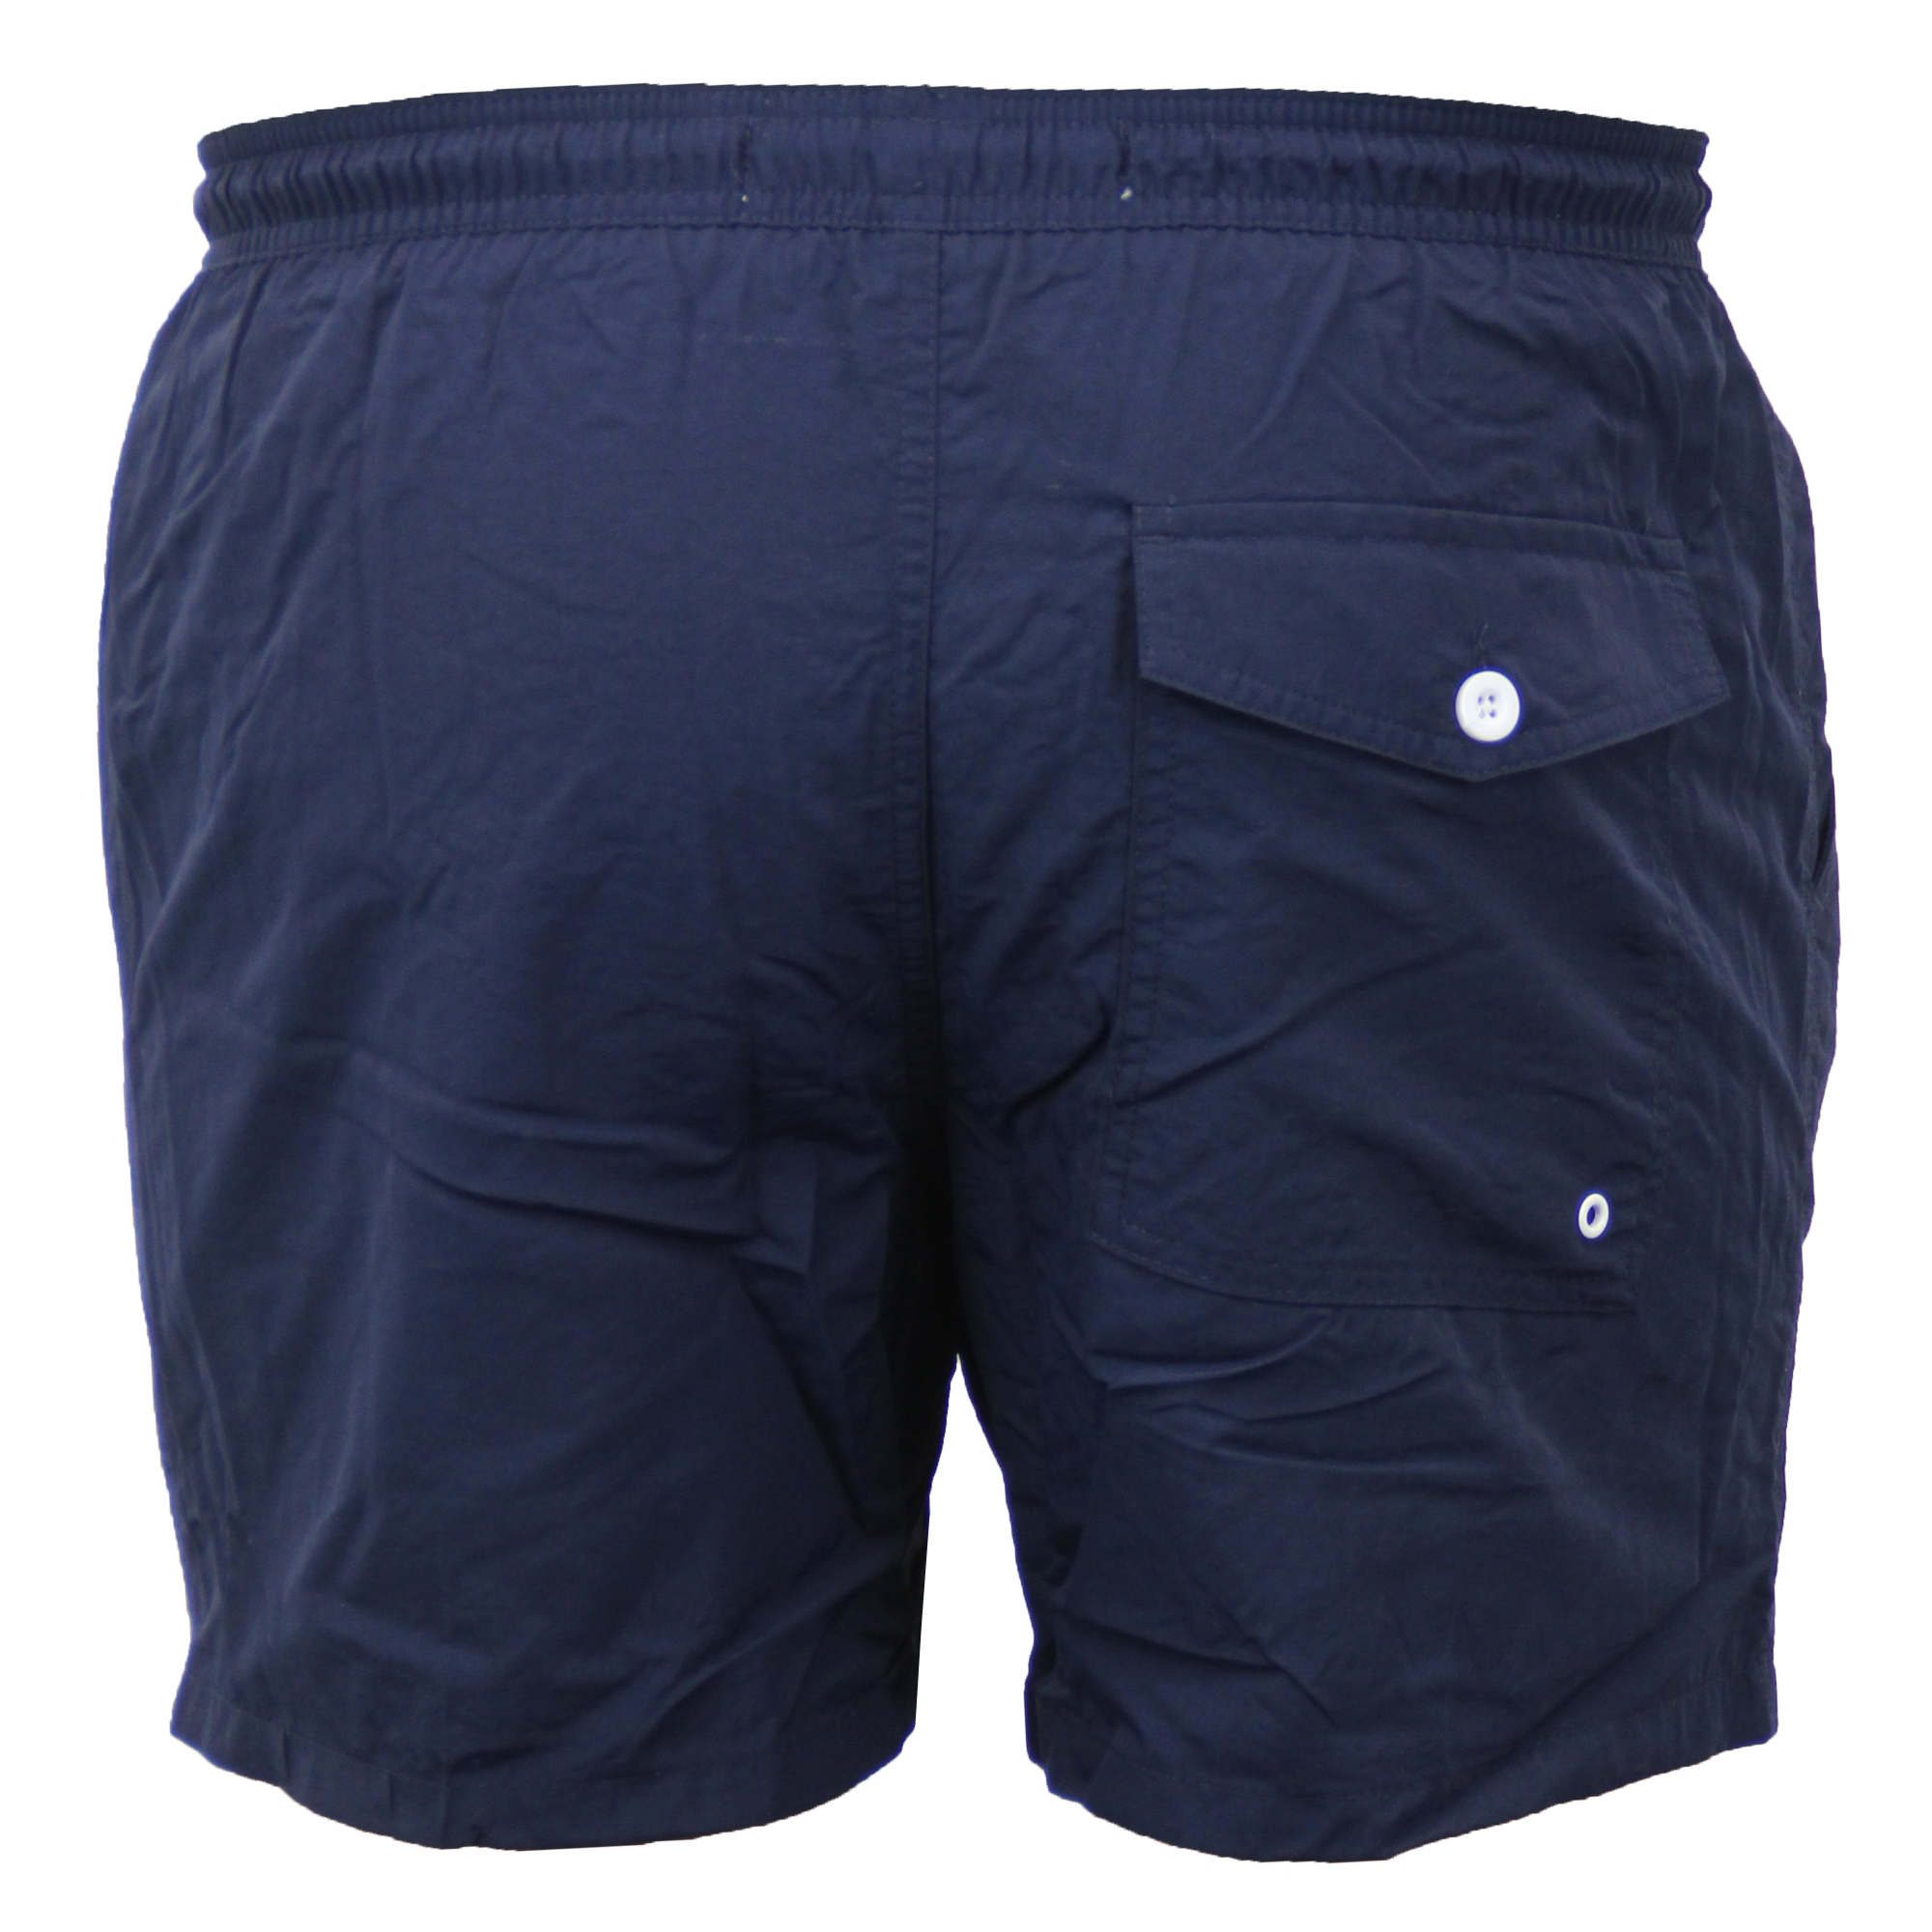 Mens-Swim-Board-Shorts-By-Brave-Soul-Mesh-Lined-New thumbnail 34